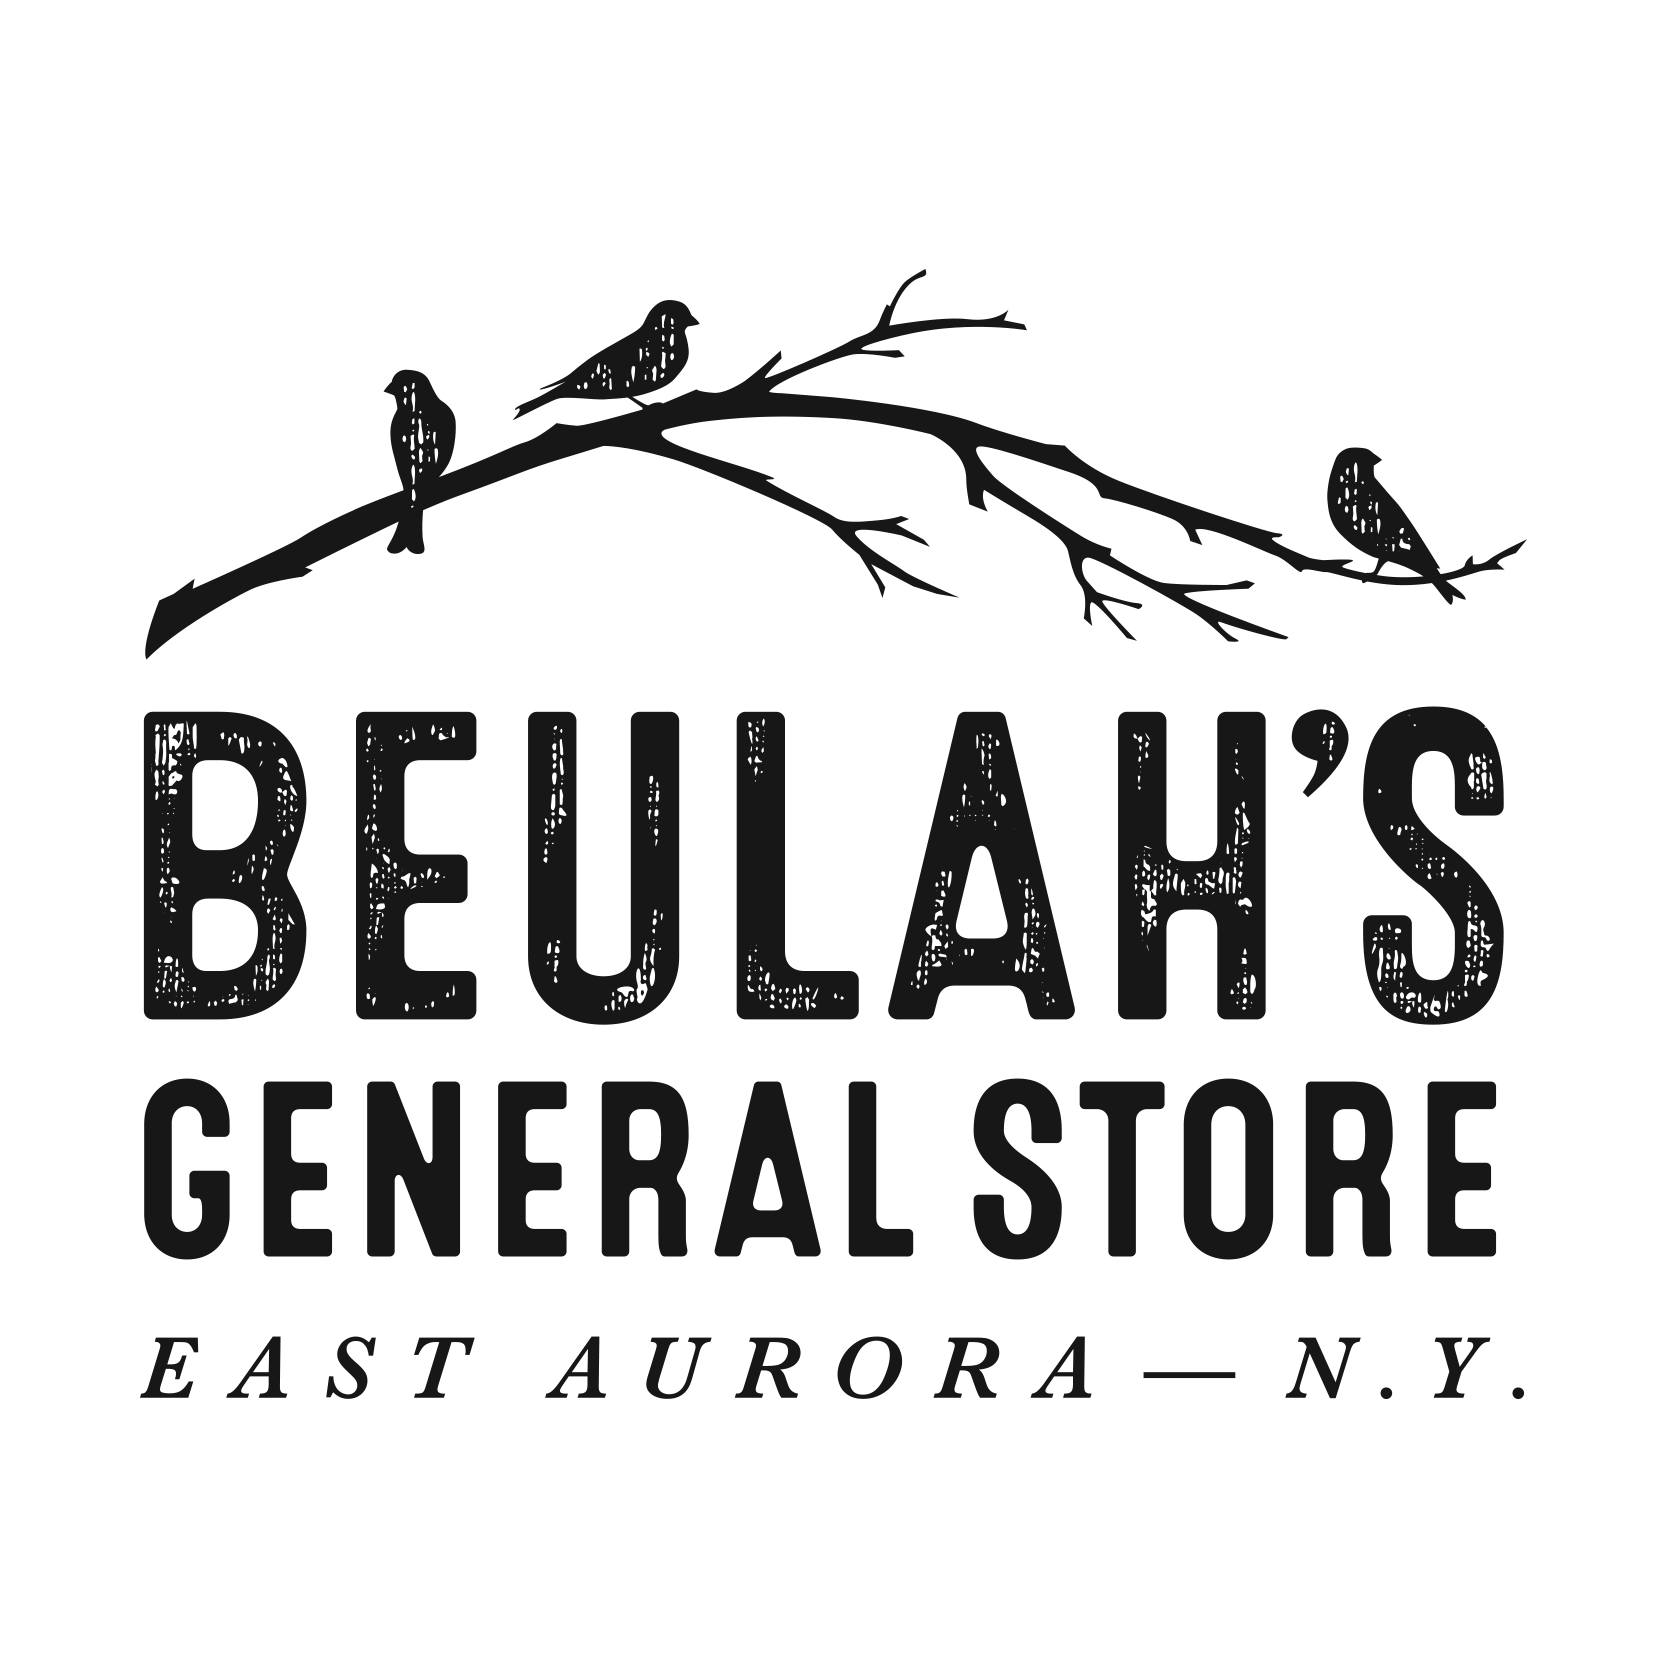 Beulah's General Store